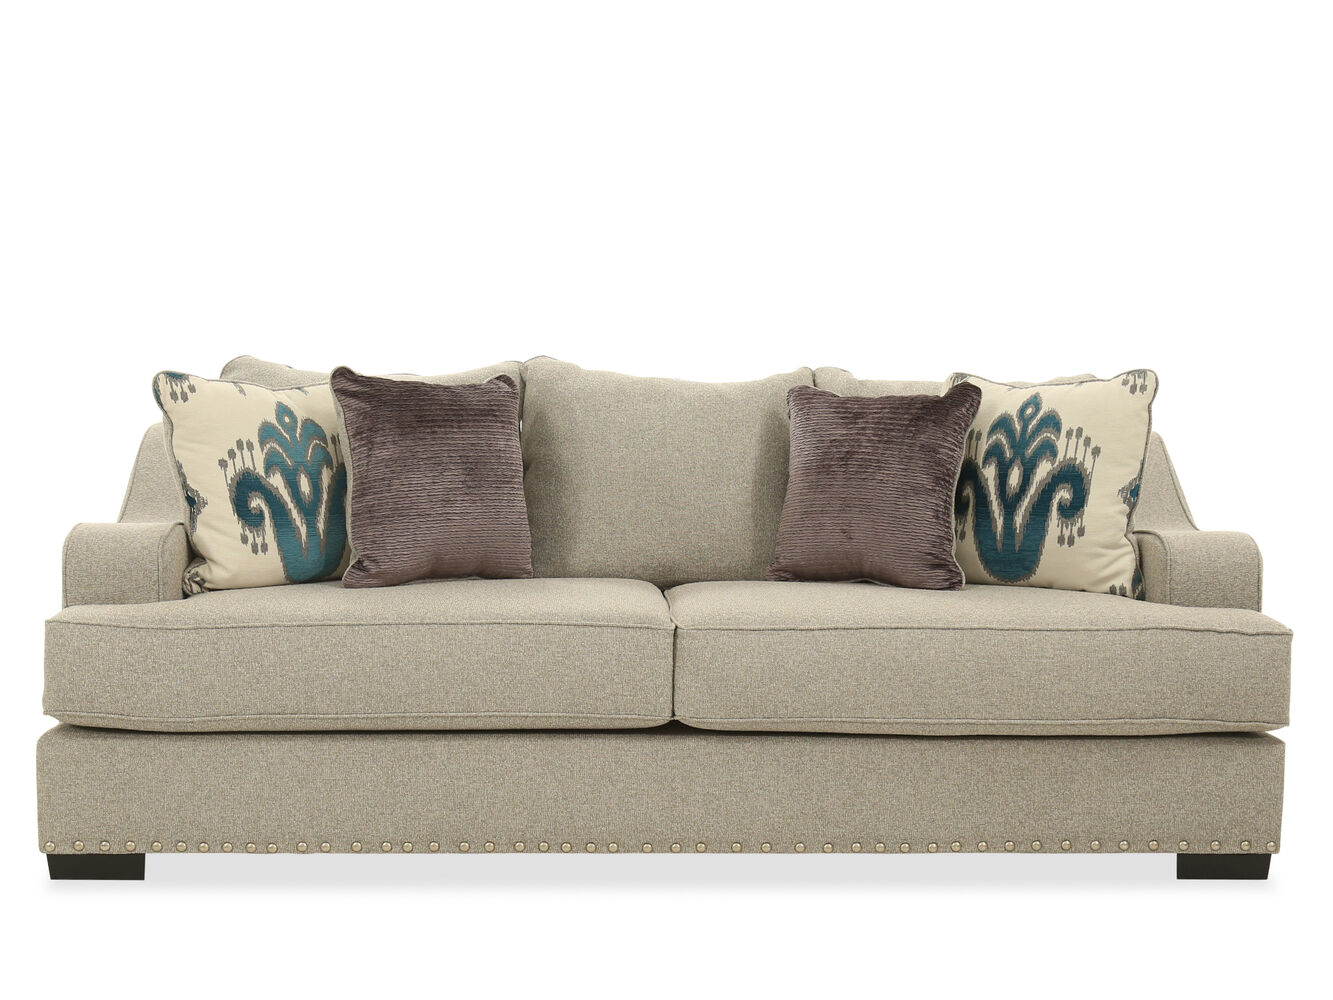 Low Profile Sofa Bespoke Curved With